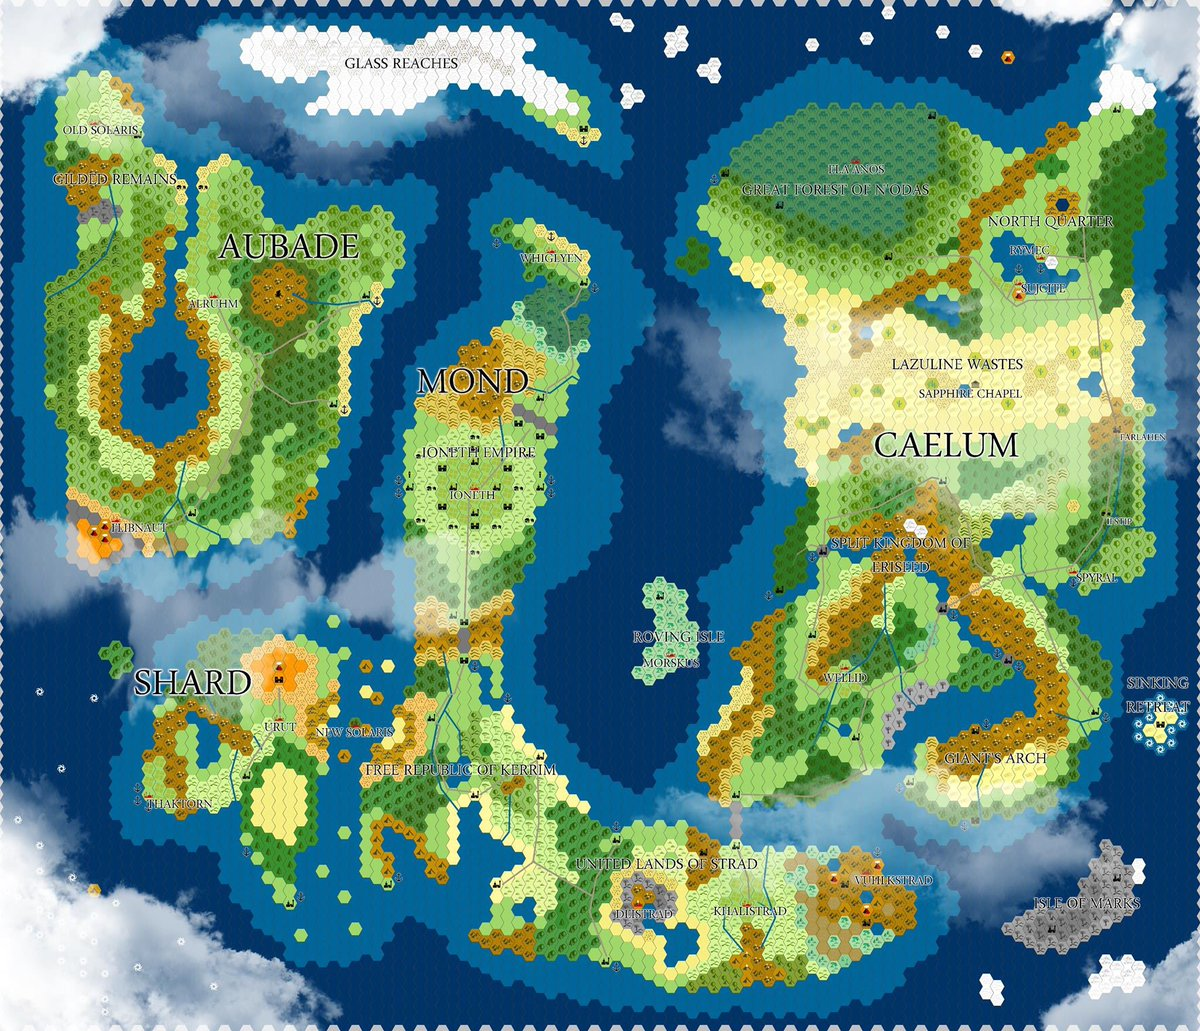 Hexographer World Map.Snickelsox On Twitter The Free Version Of Hexographer For The